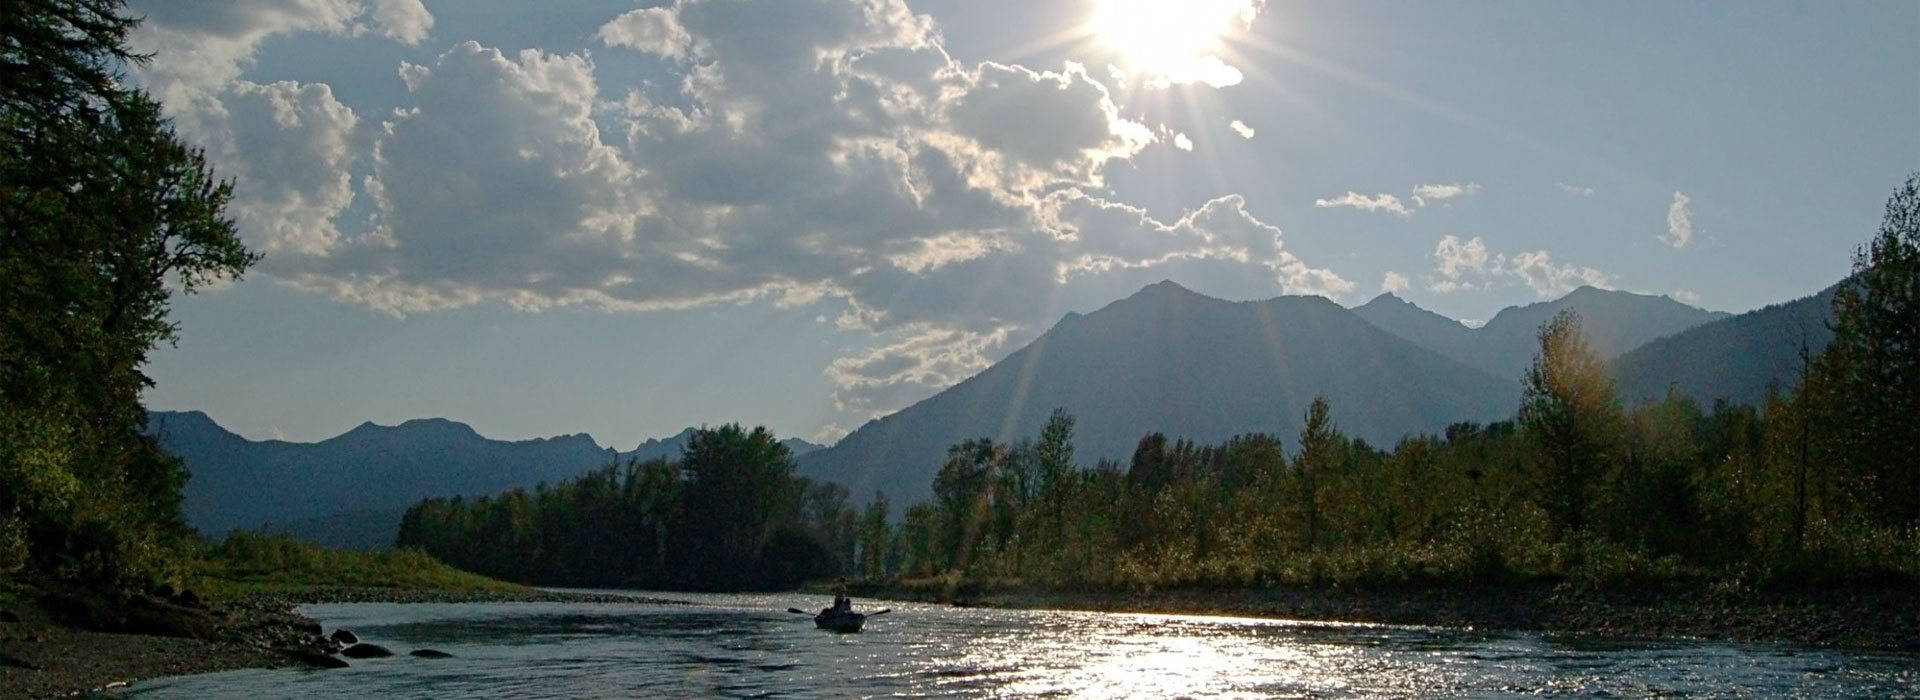 fernie river fly fishing guides